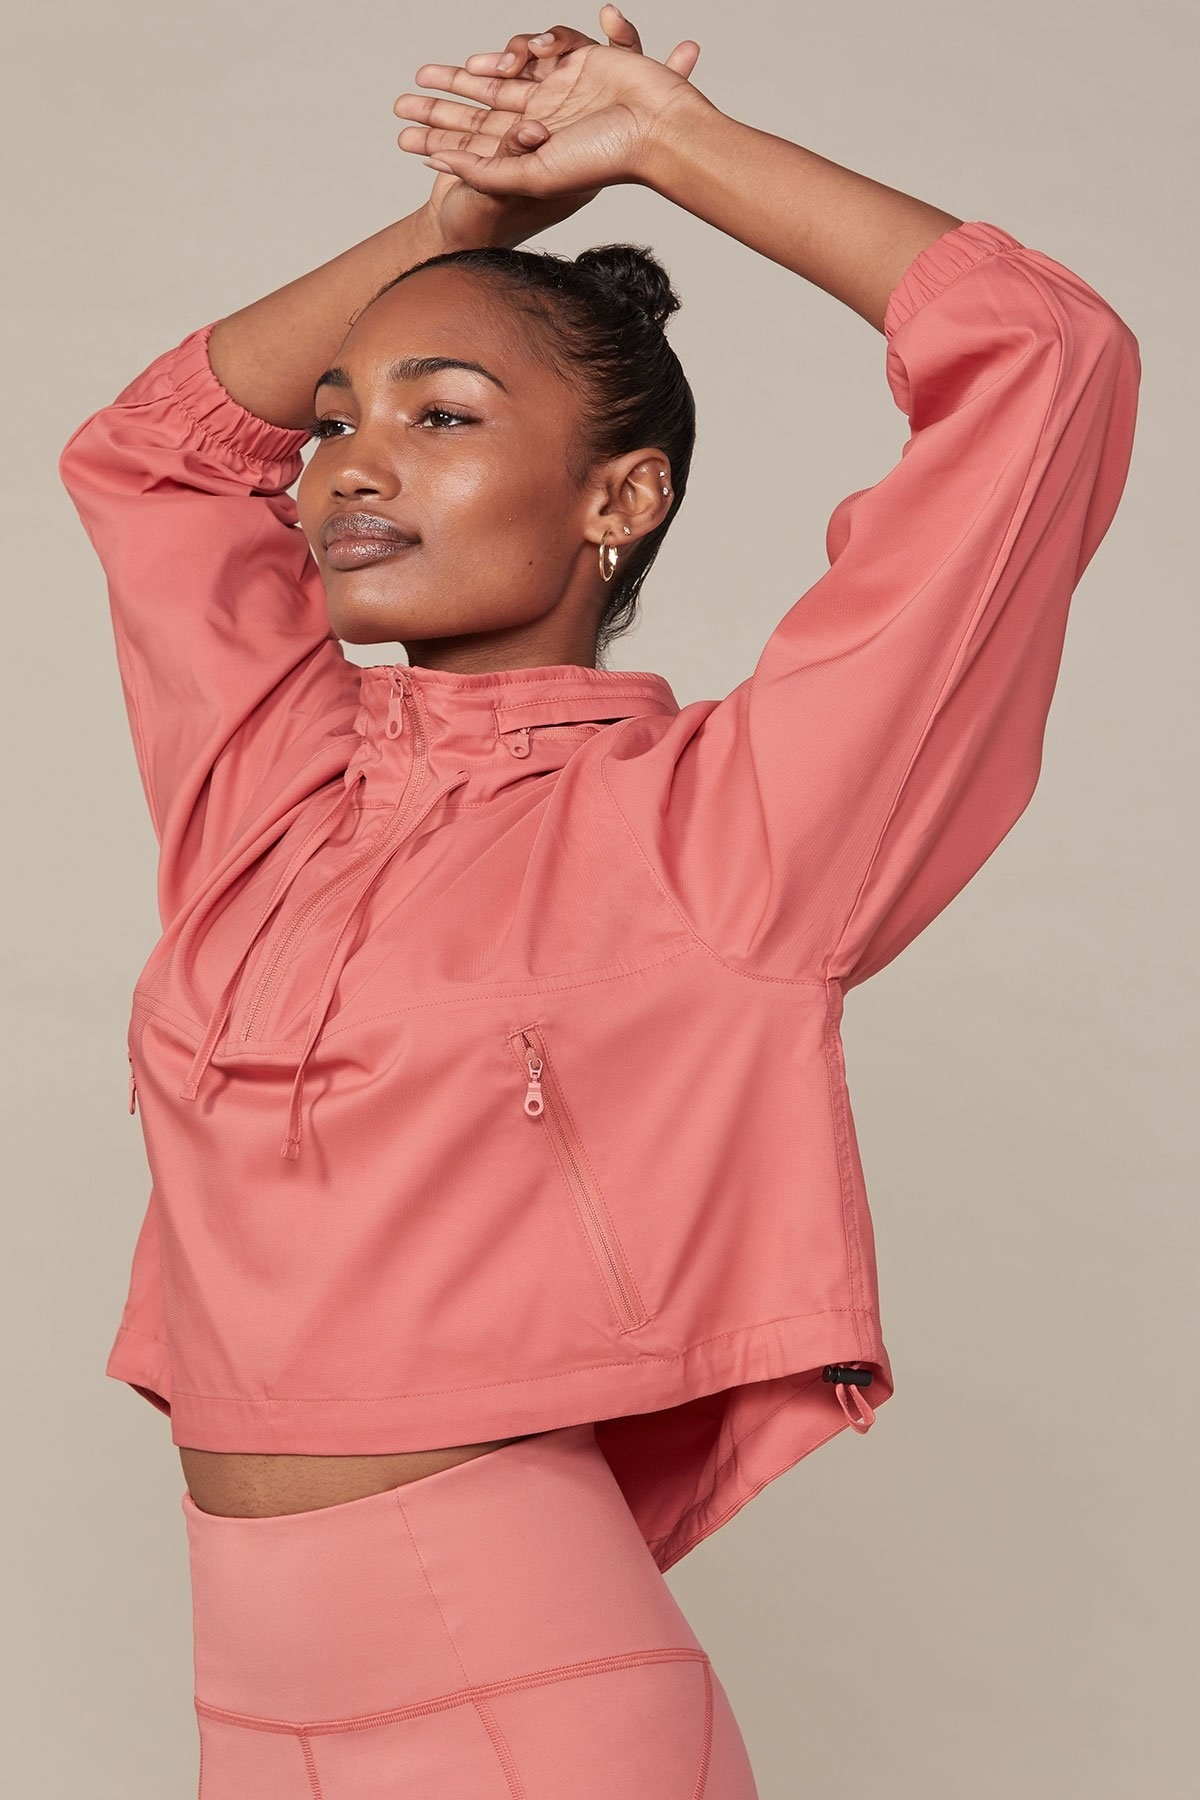 a model wearing a coral color boxy windbreaker with zipper pockets